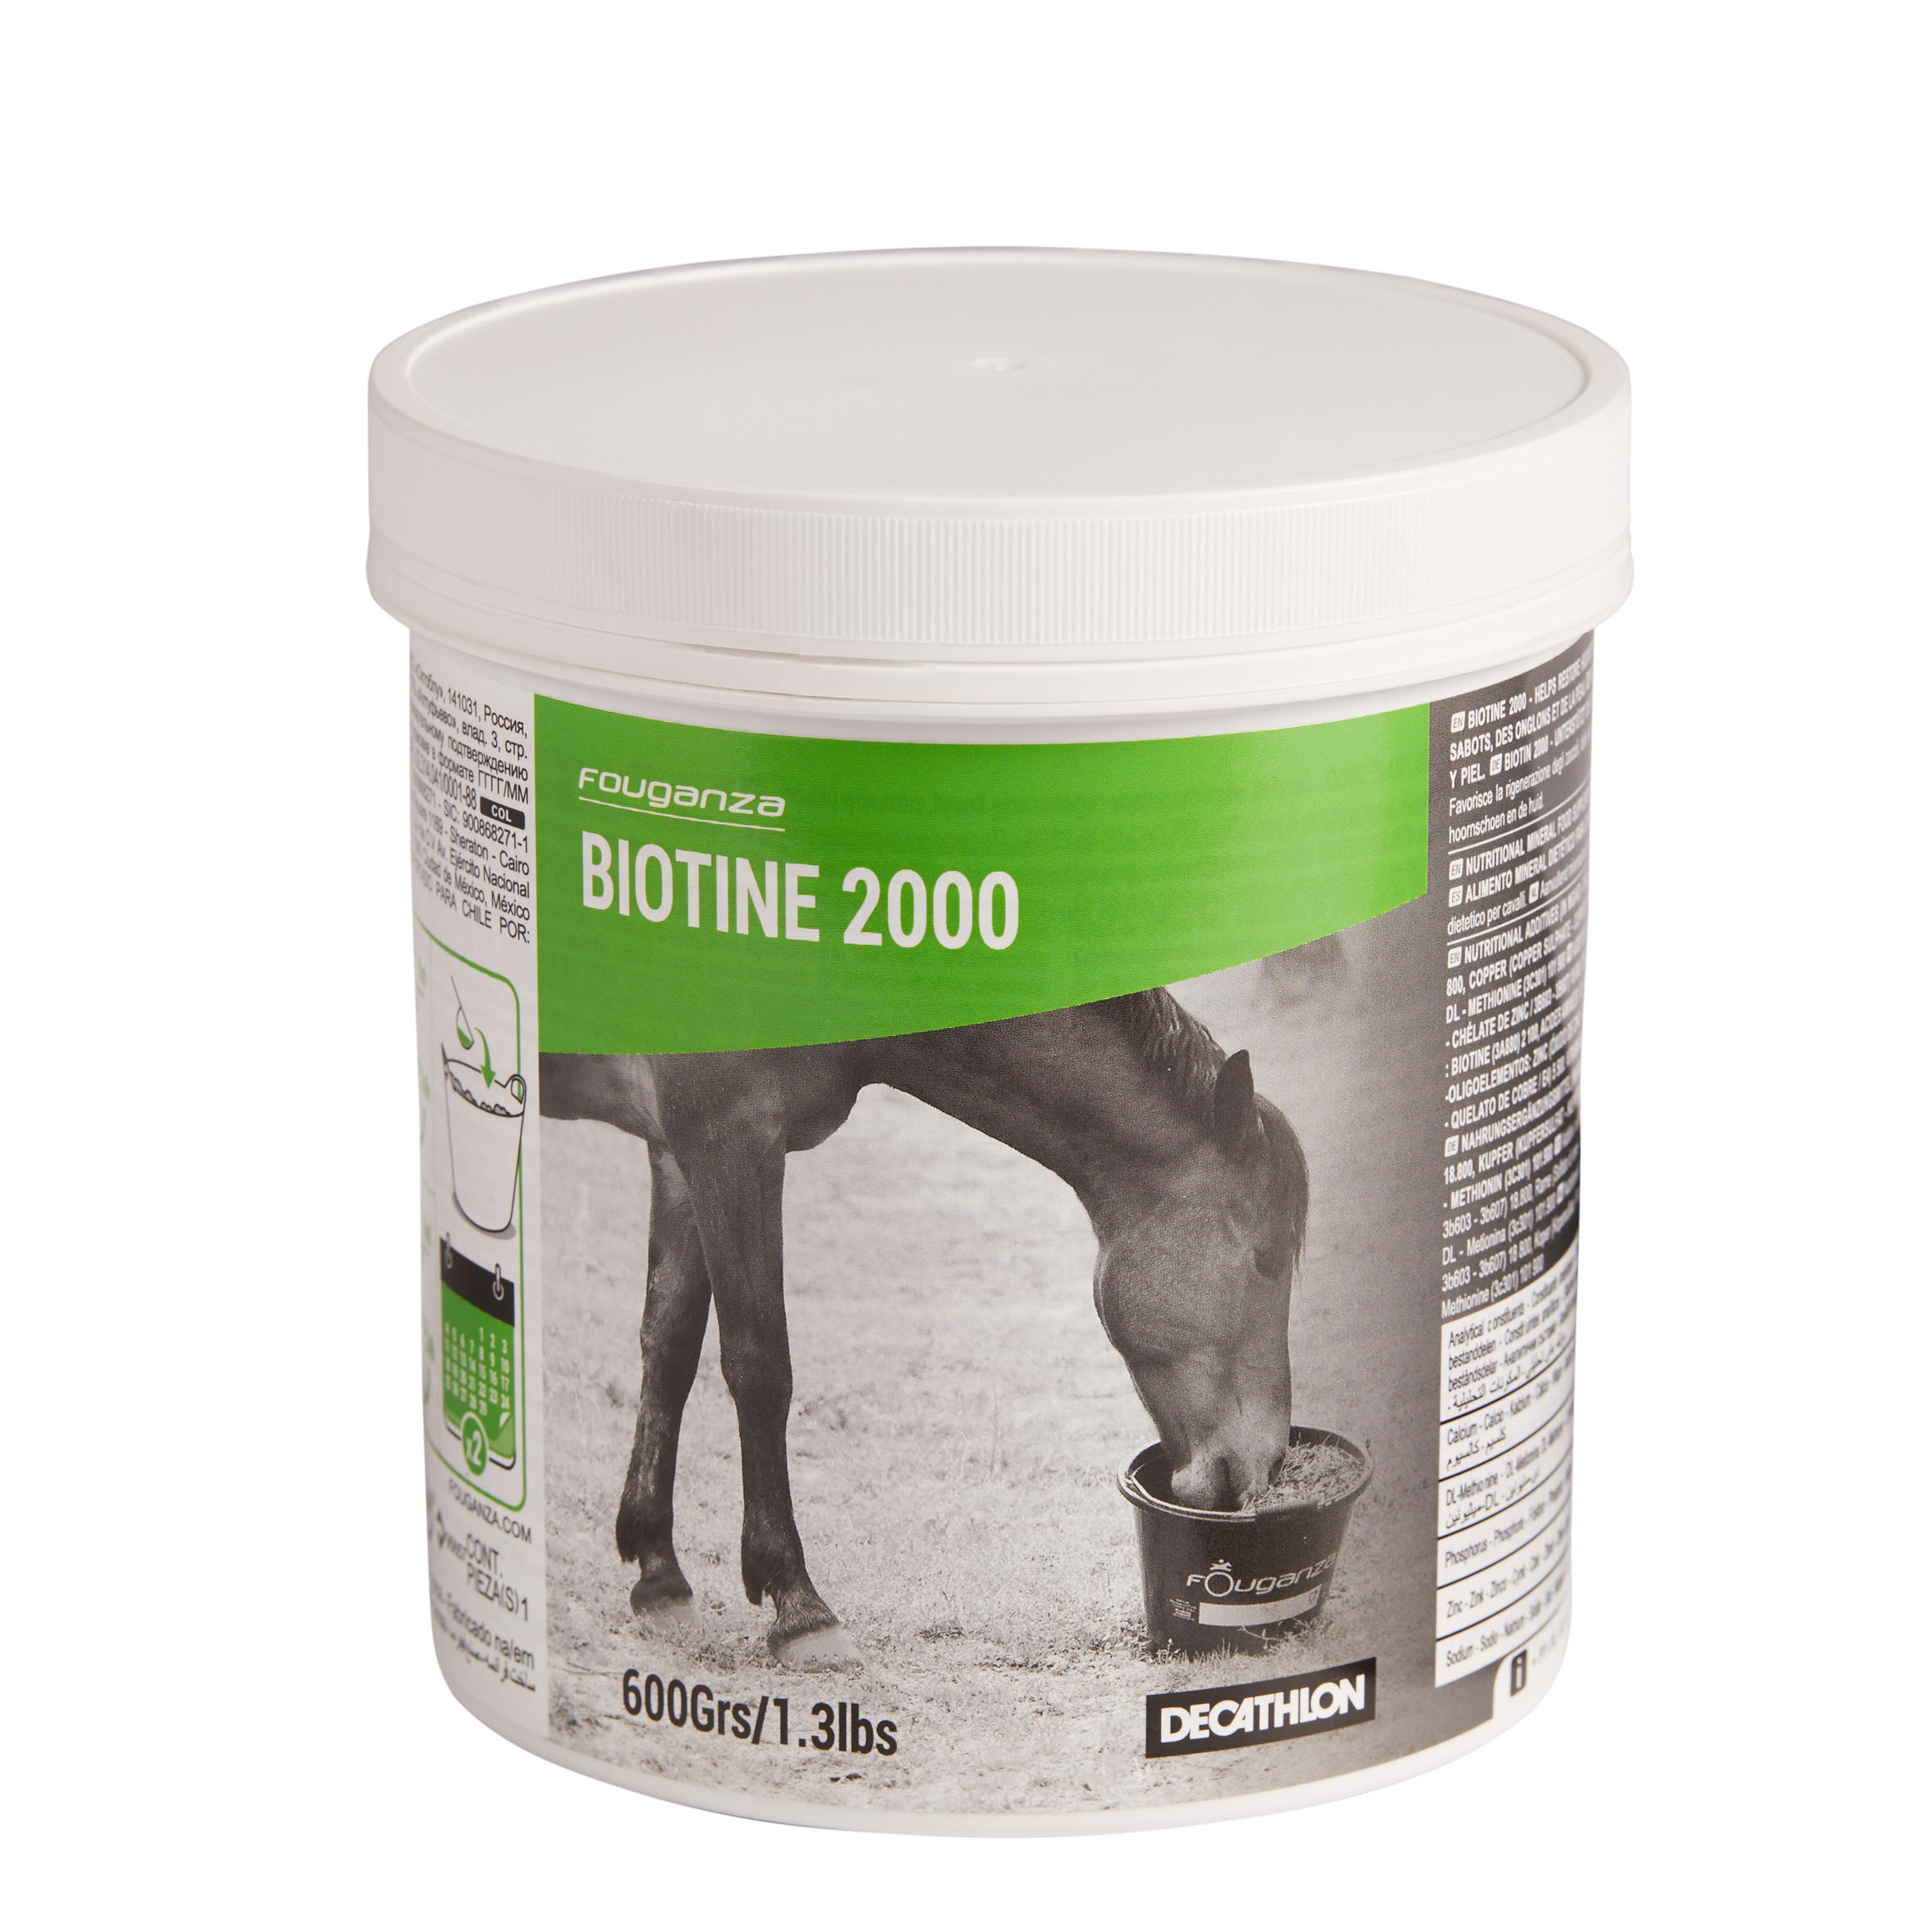 Biotine Dietary Supplement For Horse/Pony 600 g